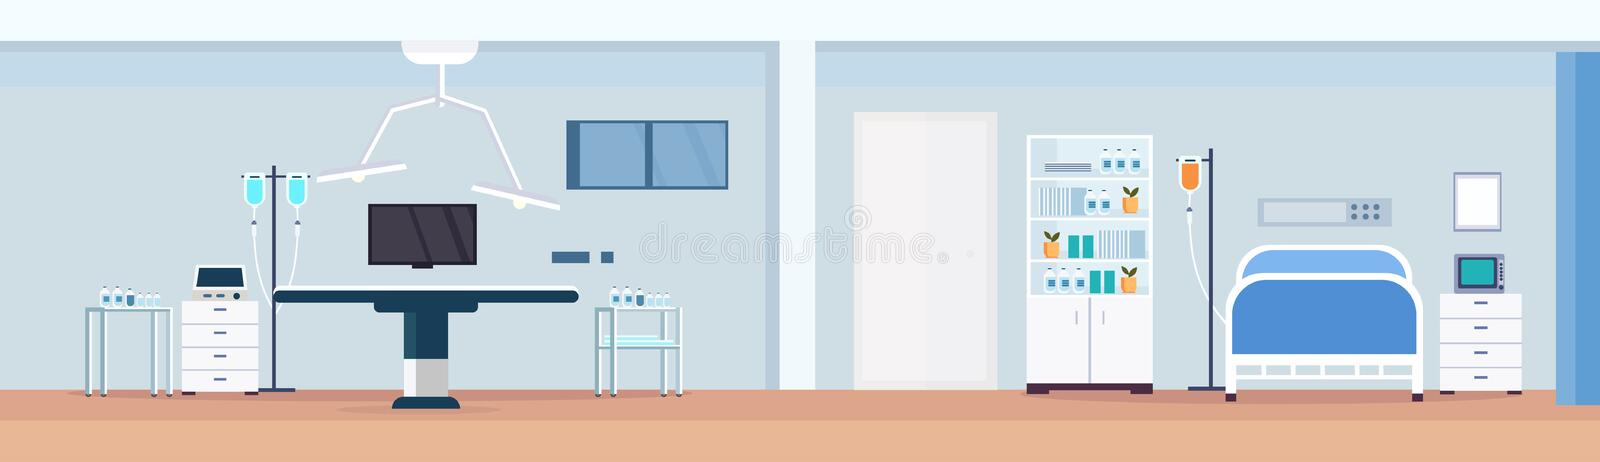 Hospital operating table clean medical room intensive therapy patient ward with nursing care bed empty no people modern. Clinic furniture horizontal vector royalty free illustration